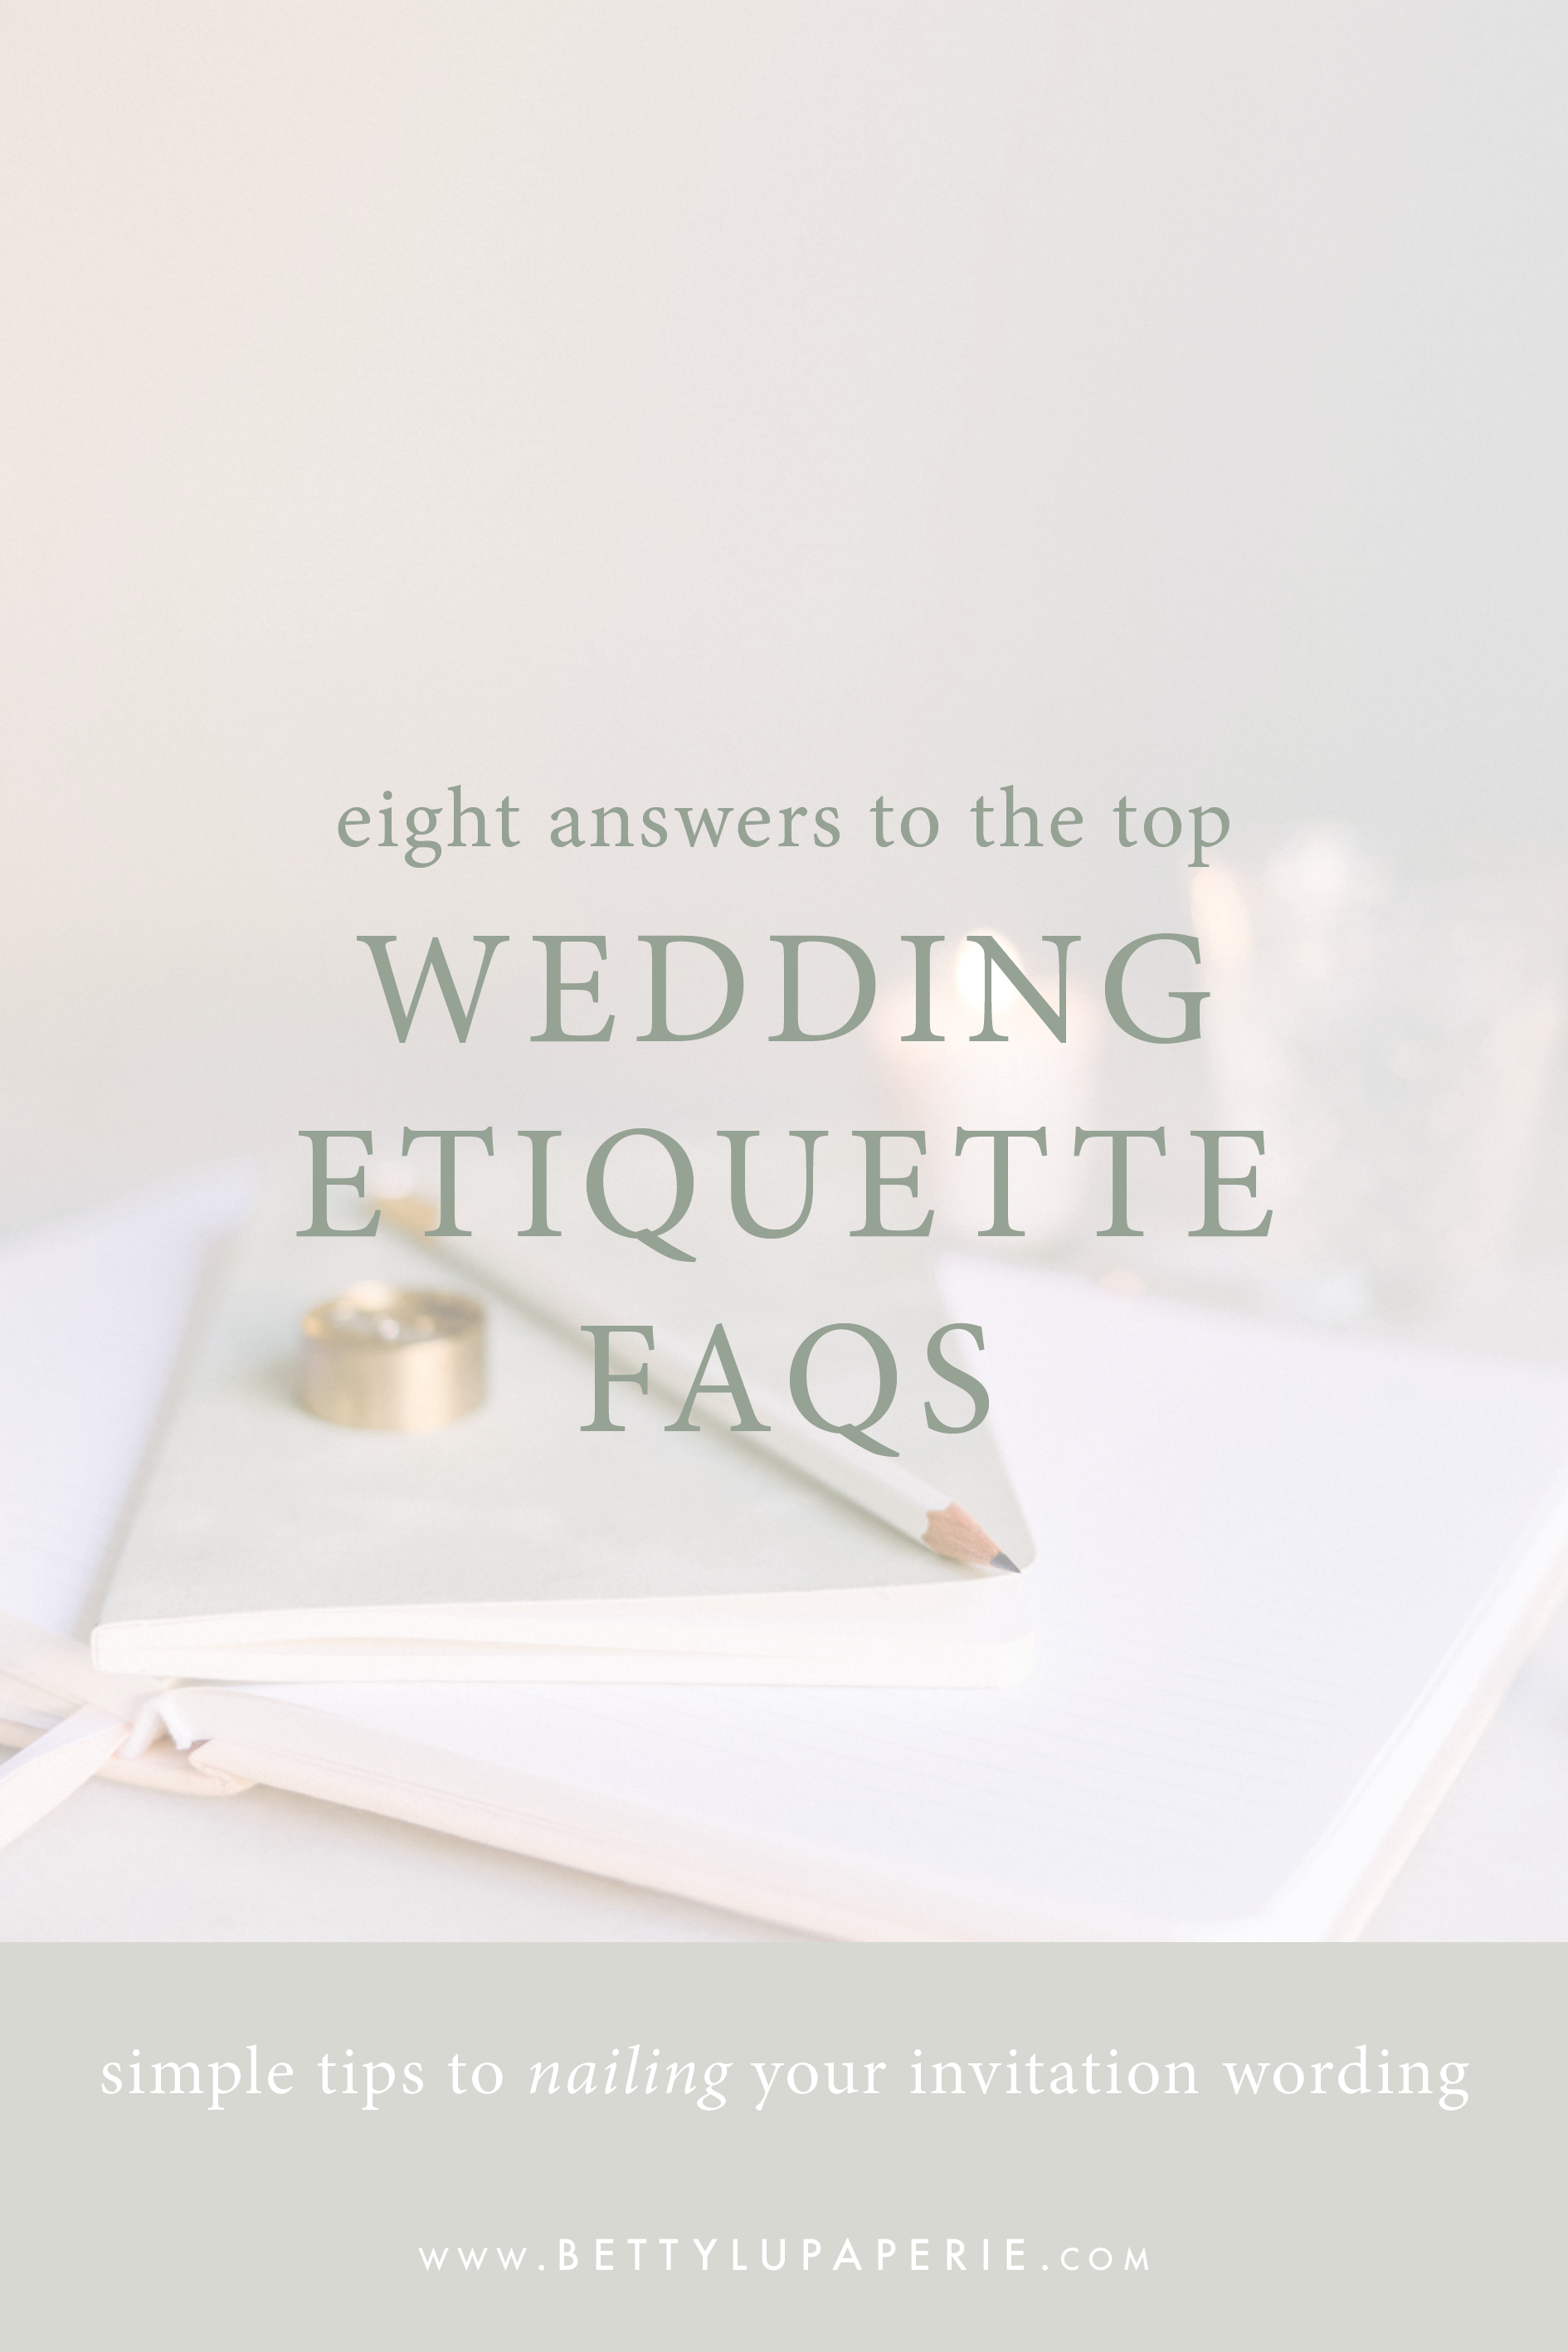 8 Answers To Top Wedding Invitation Etiquette Faqs Floral Wedding Invitations From Betty Lu Paperie In 2020 Wedding Invitation Etiquette Invitation Etiquette Invitation Wording